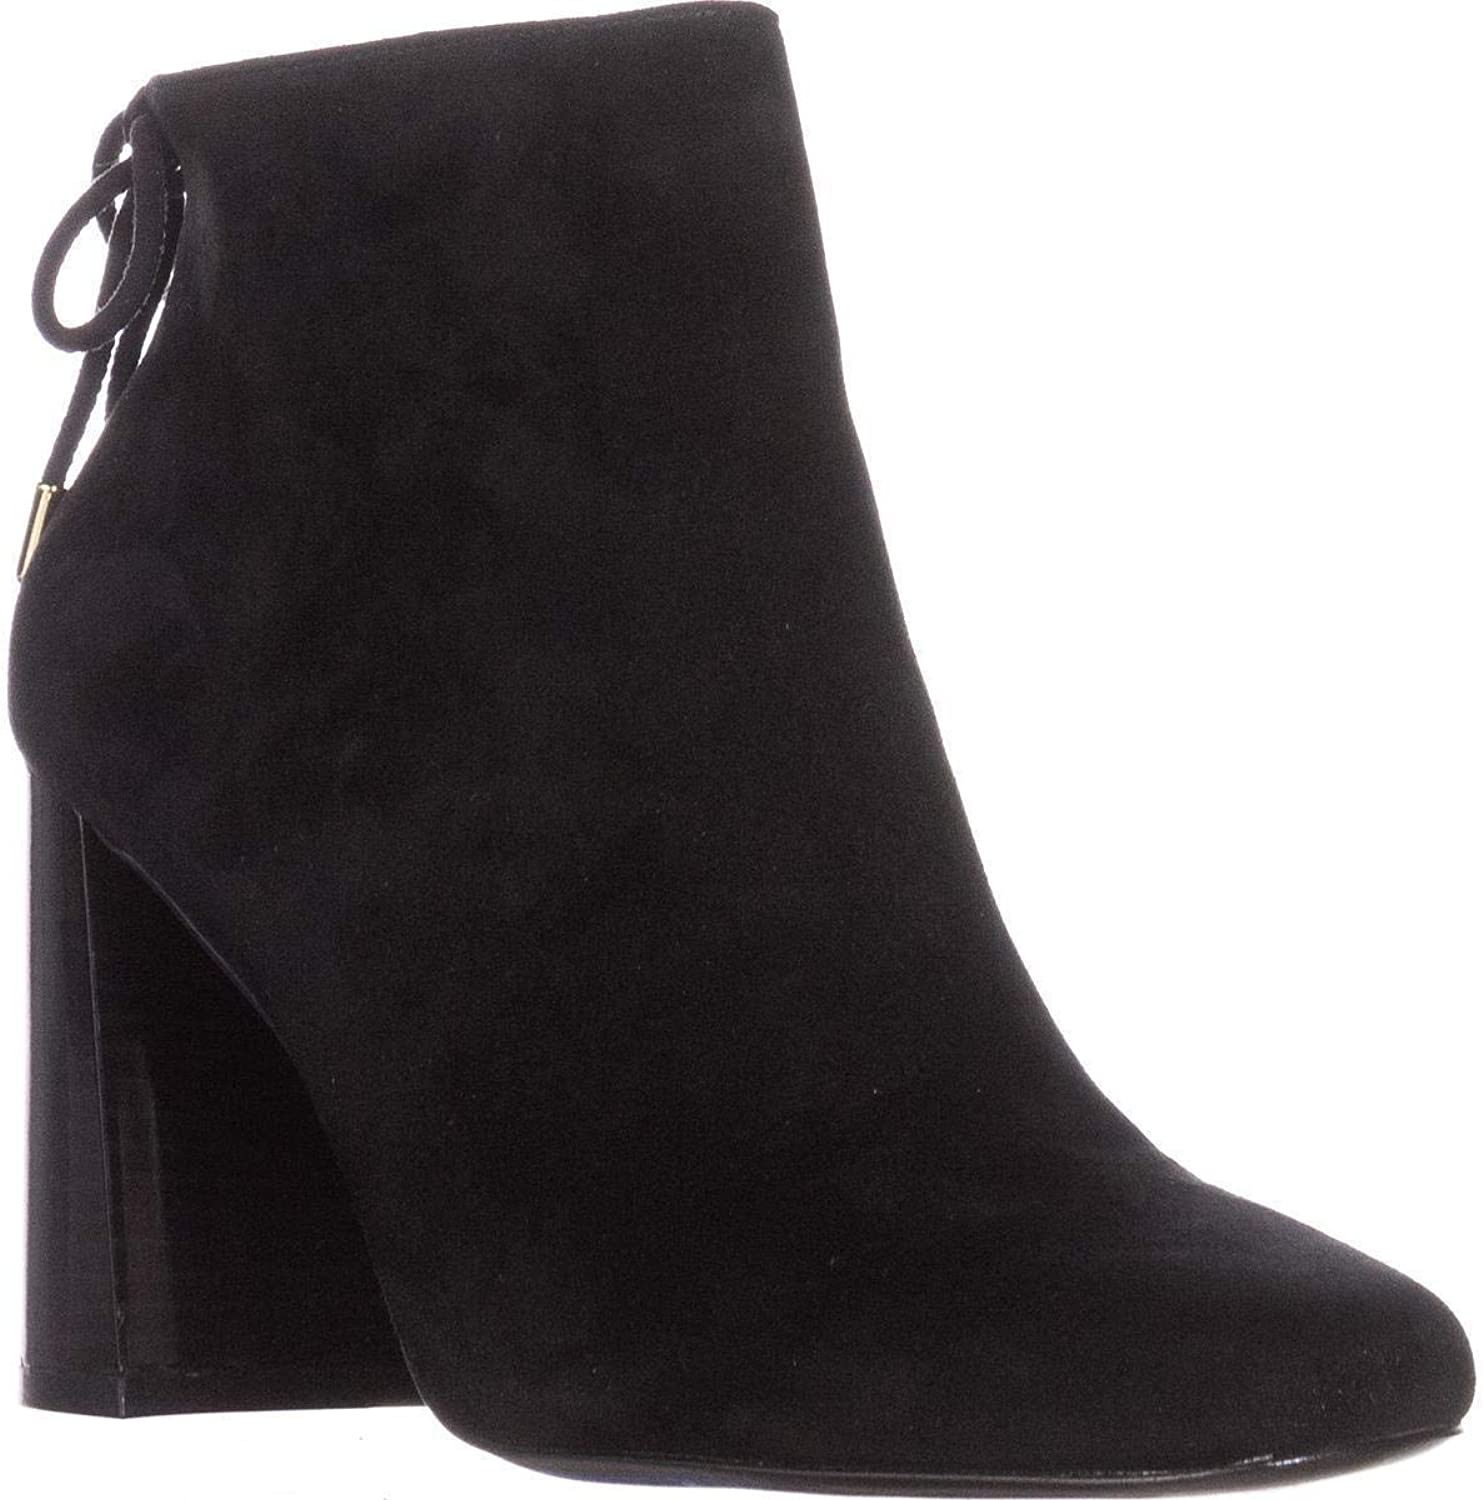 INC International Concepts I35 Denelli Tie Ankle Boots, Black Suede